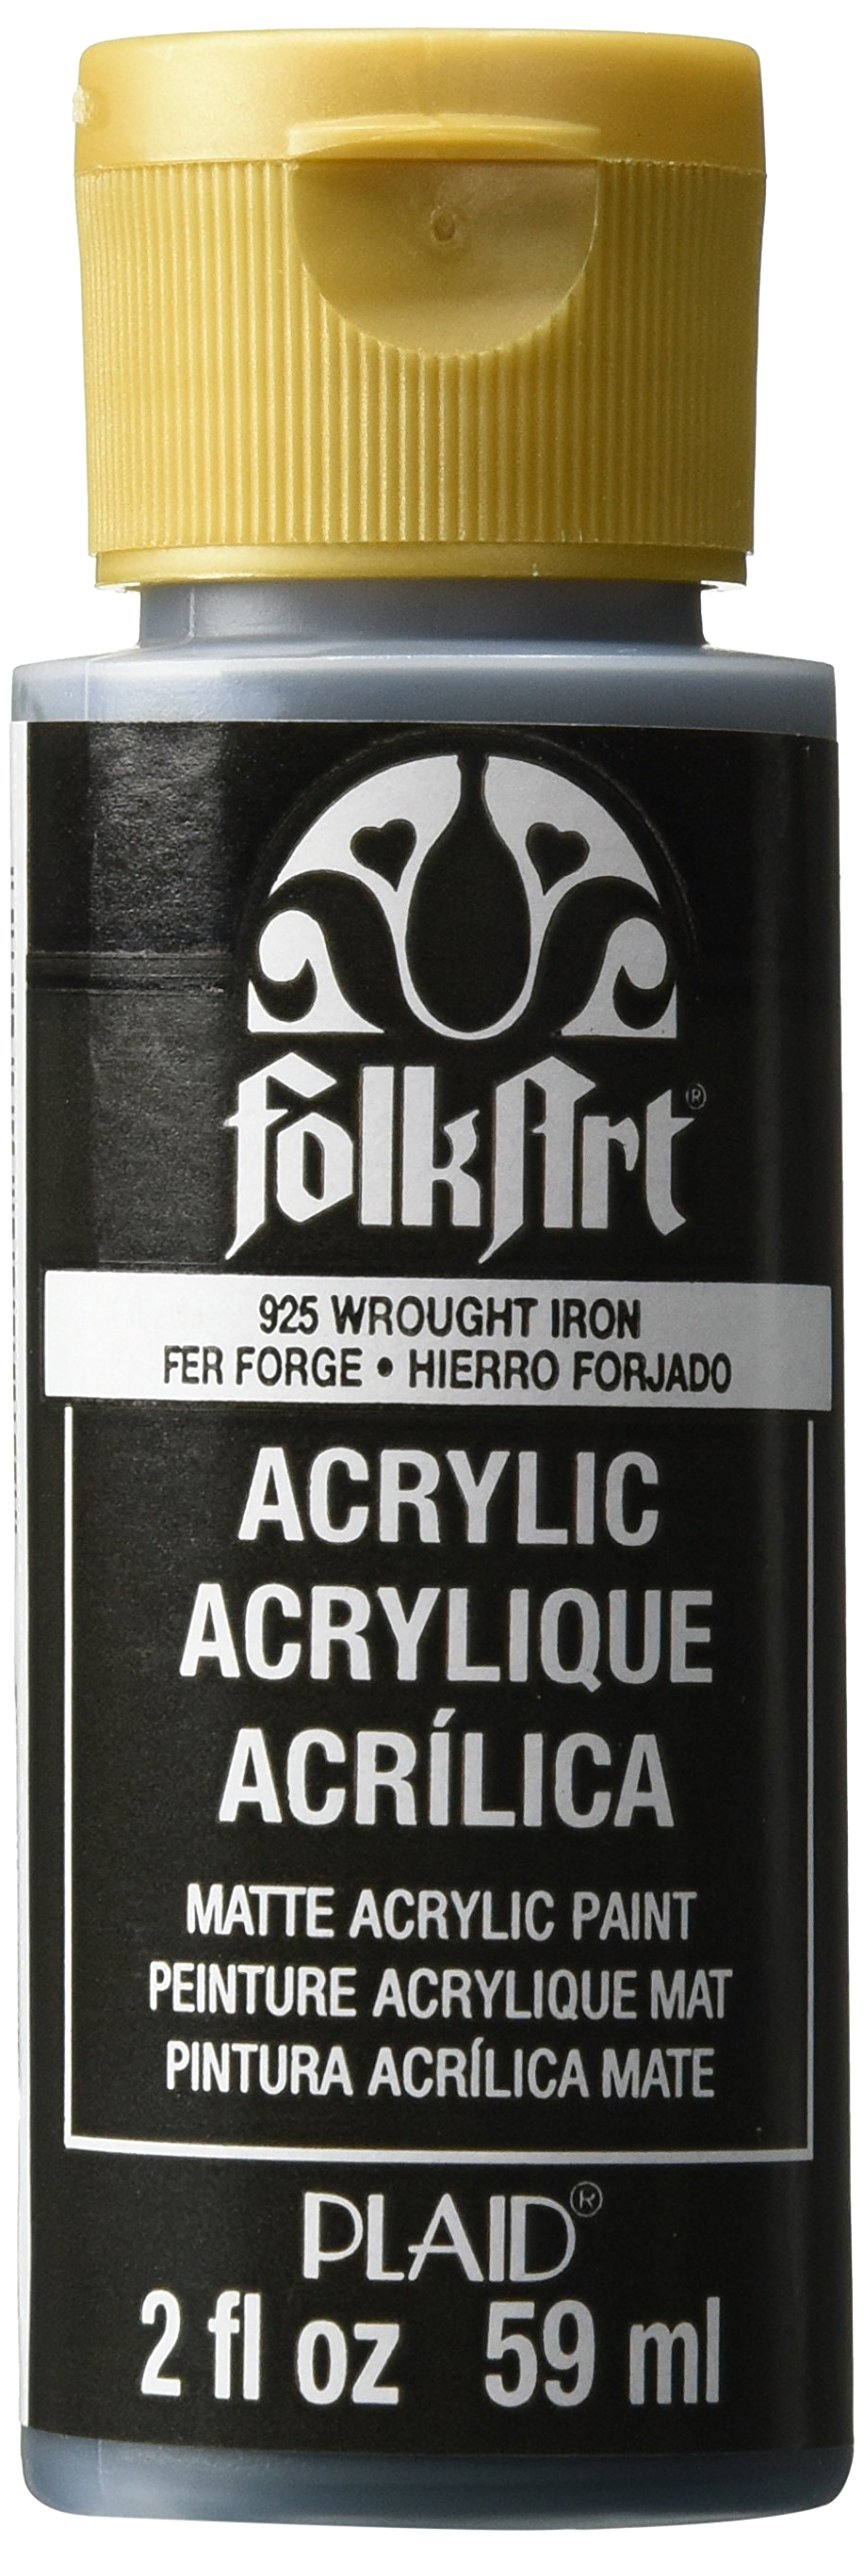 FolkArt Acrylic Paint in Assorted Colors (2 oz), 925, Wrought Iron